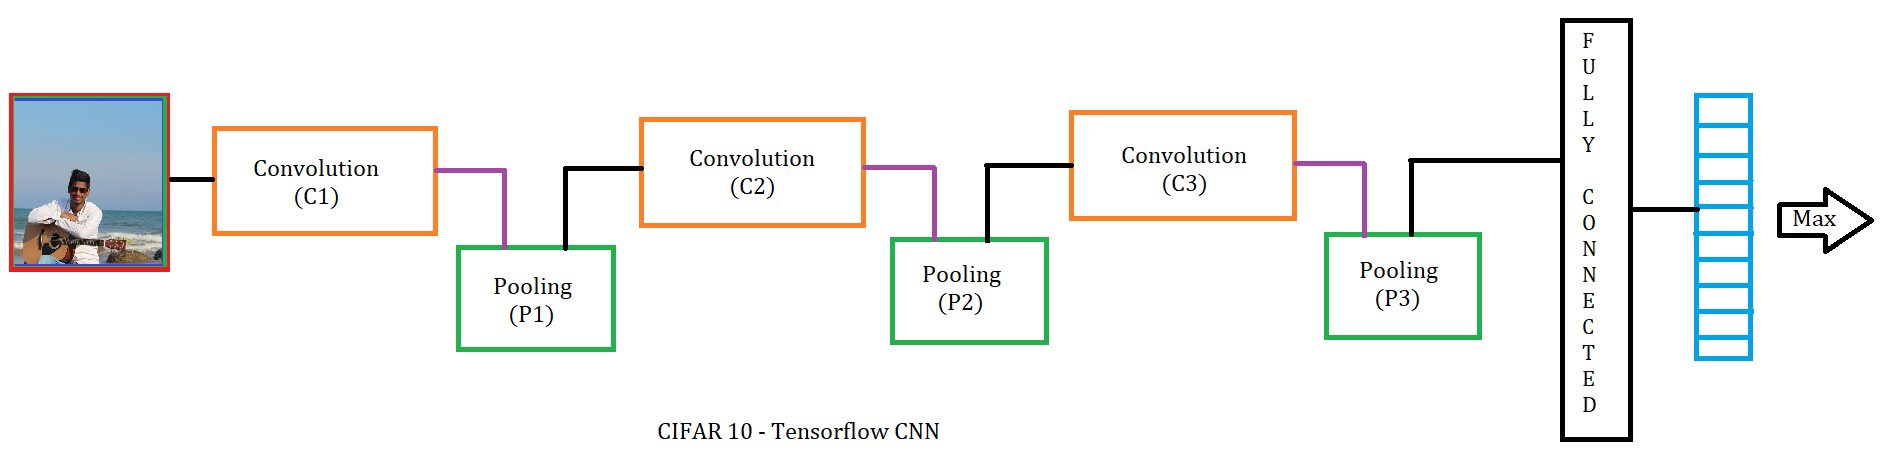 Chapter 8  1: Code for Convolutional neural networks